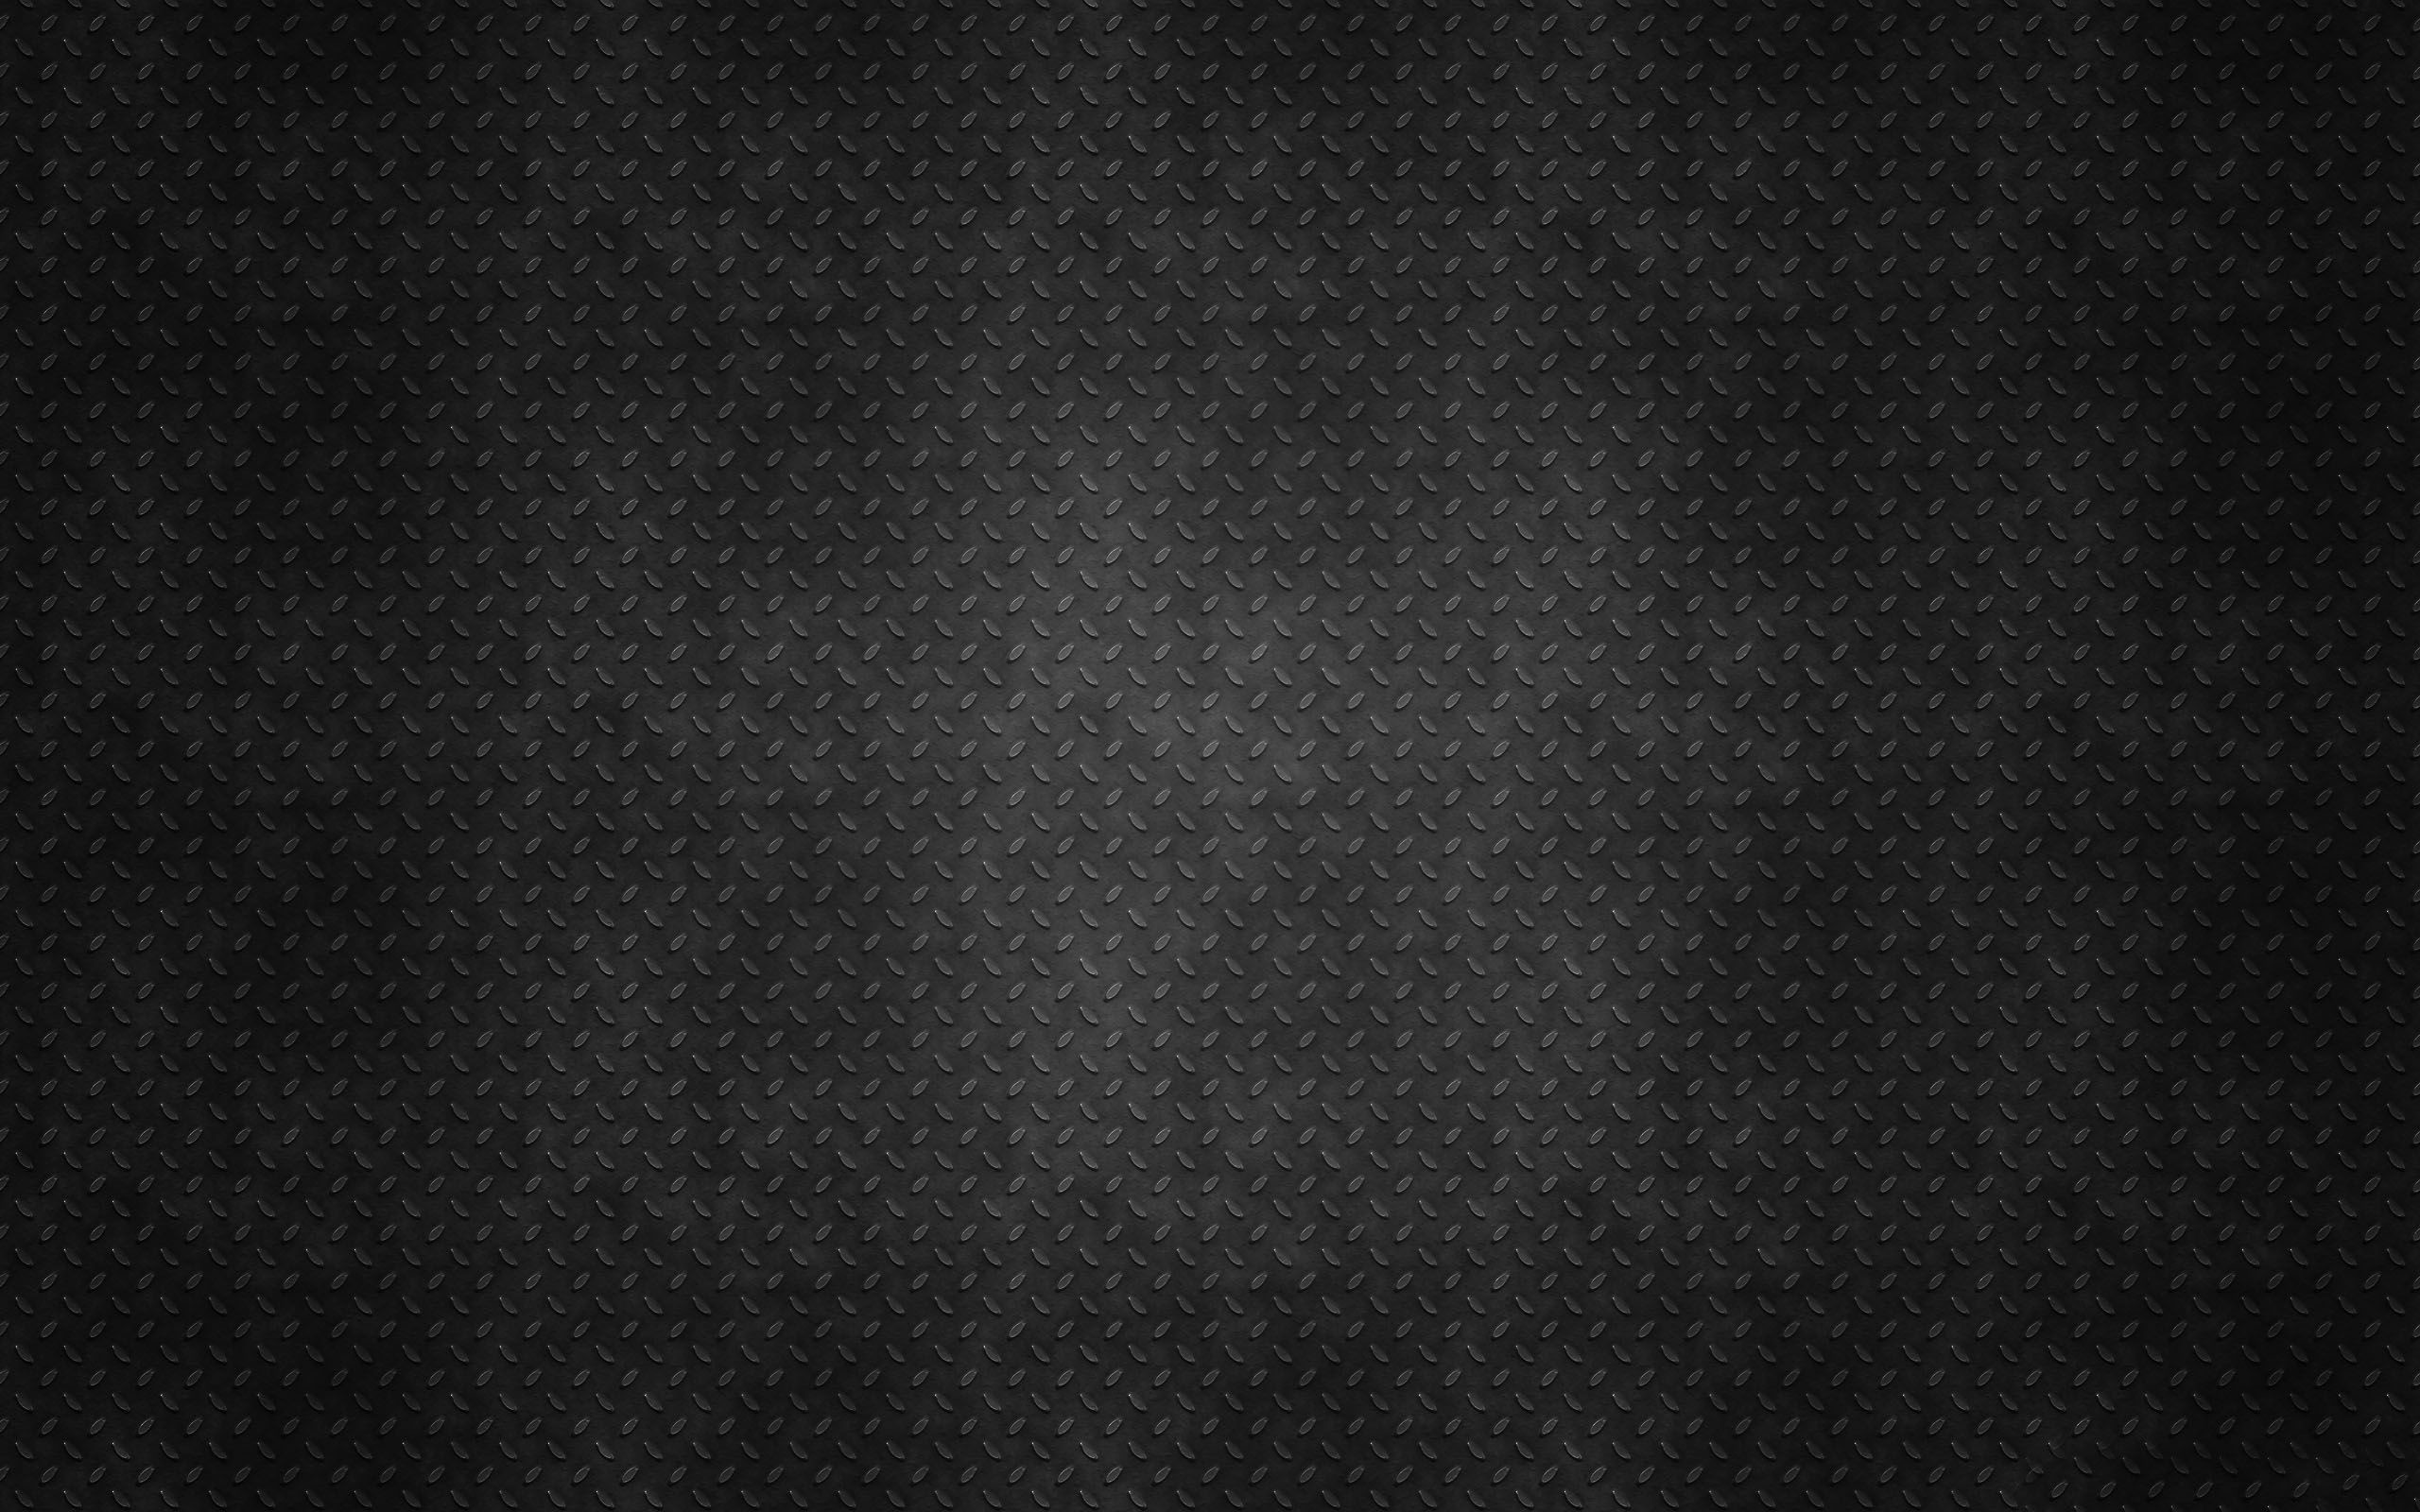 2560x1600 black-hd-background-background-wallpapers-abstract-photo-cool-black- background | CMDi